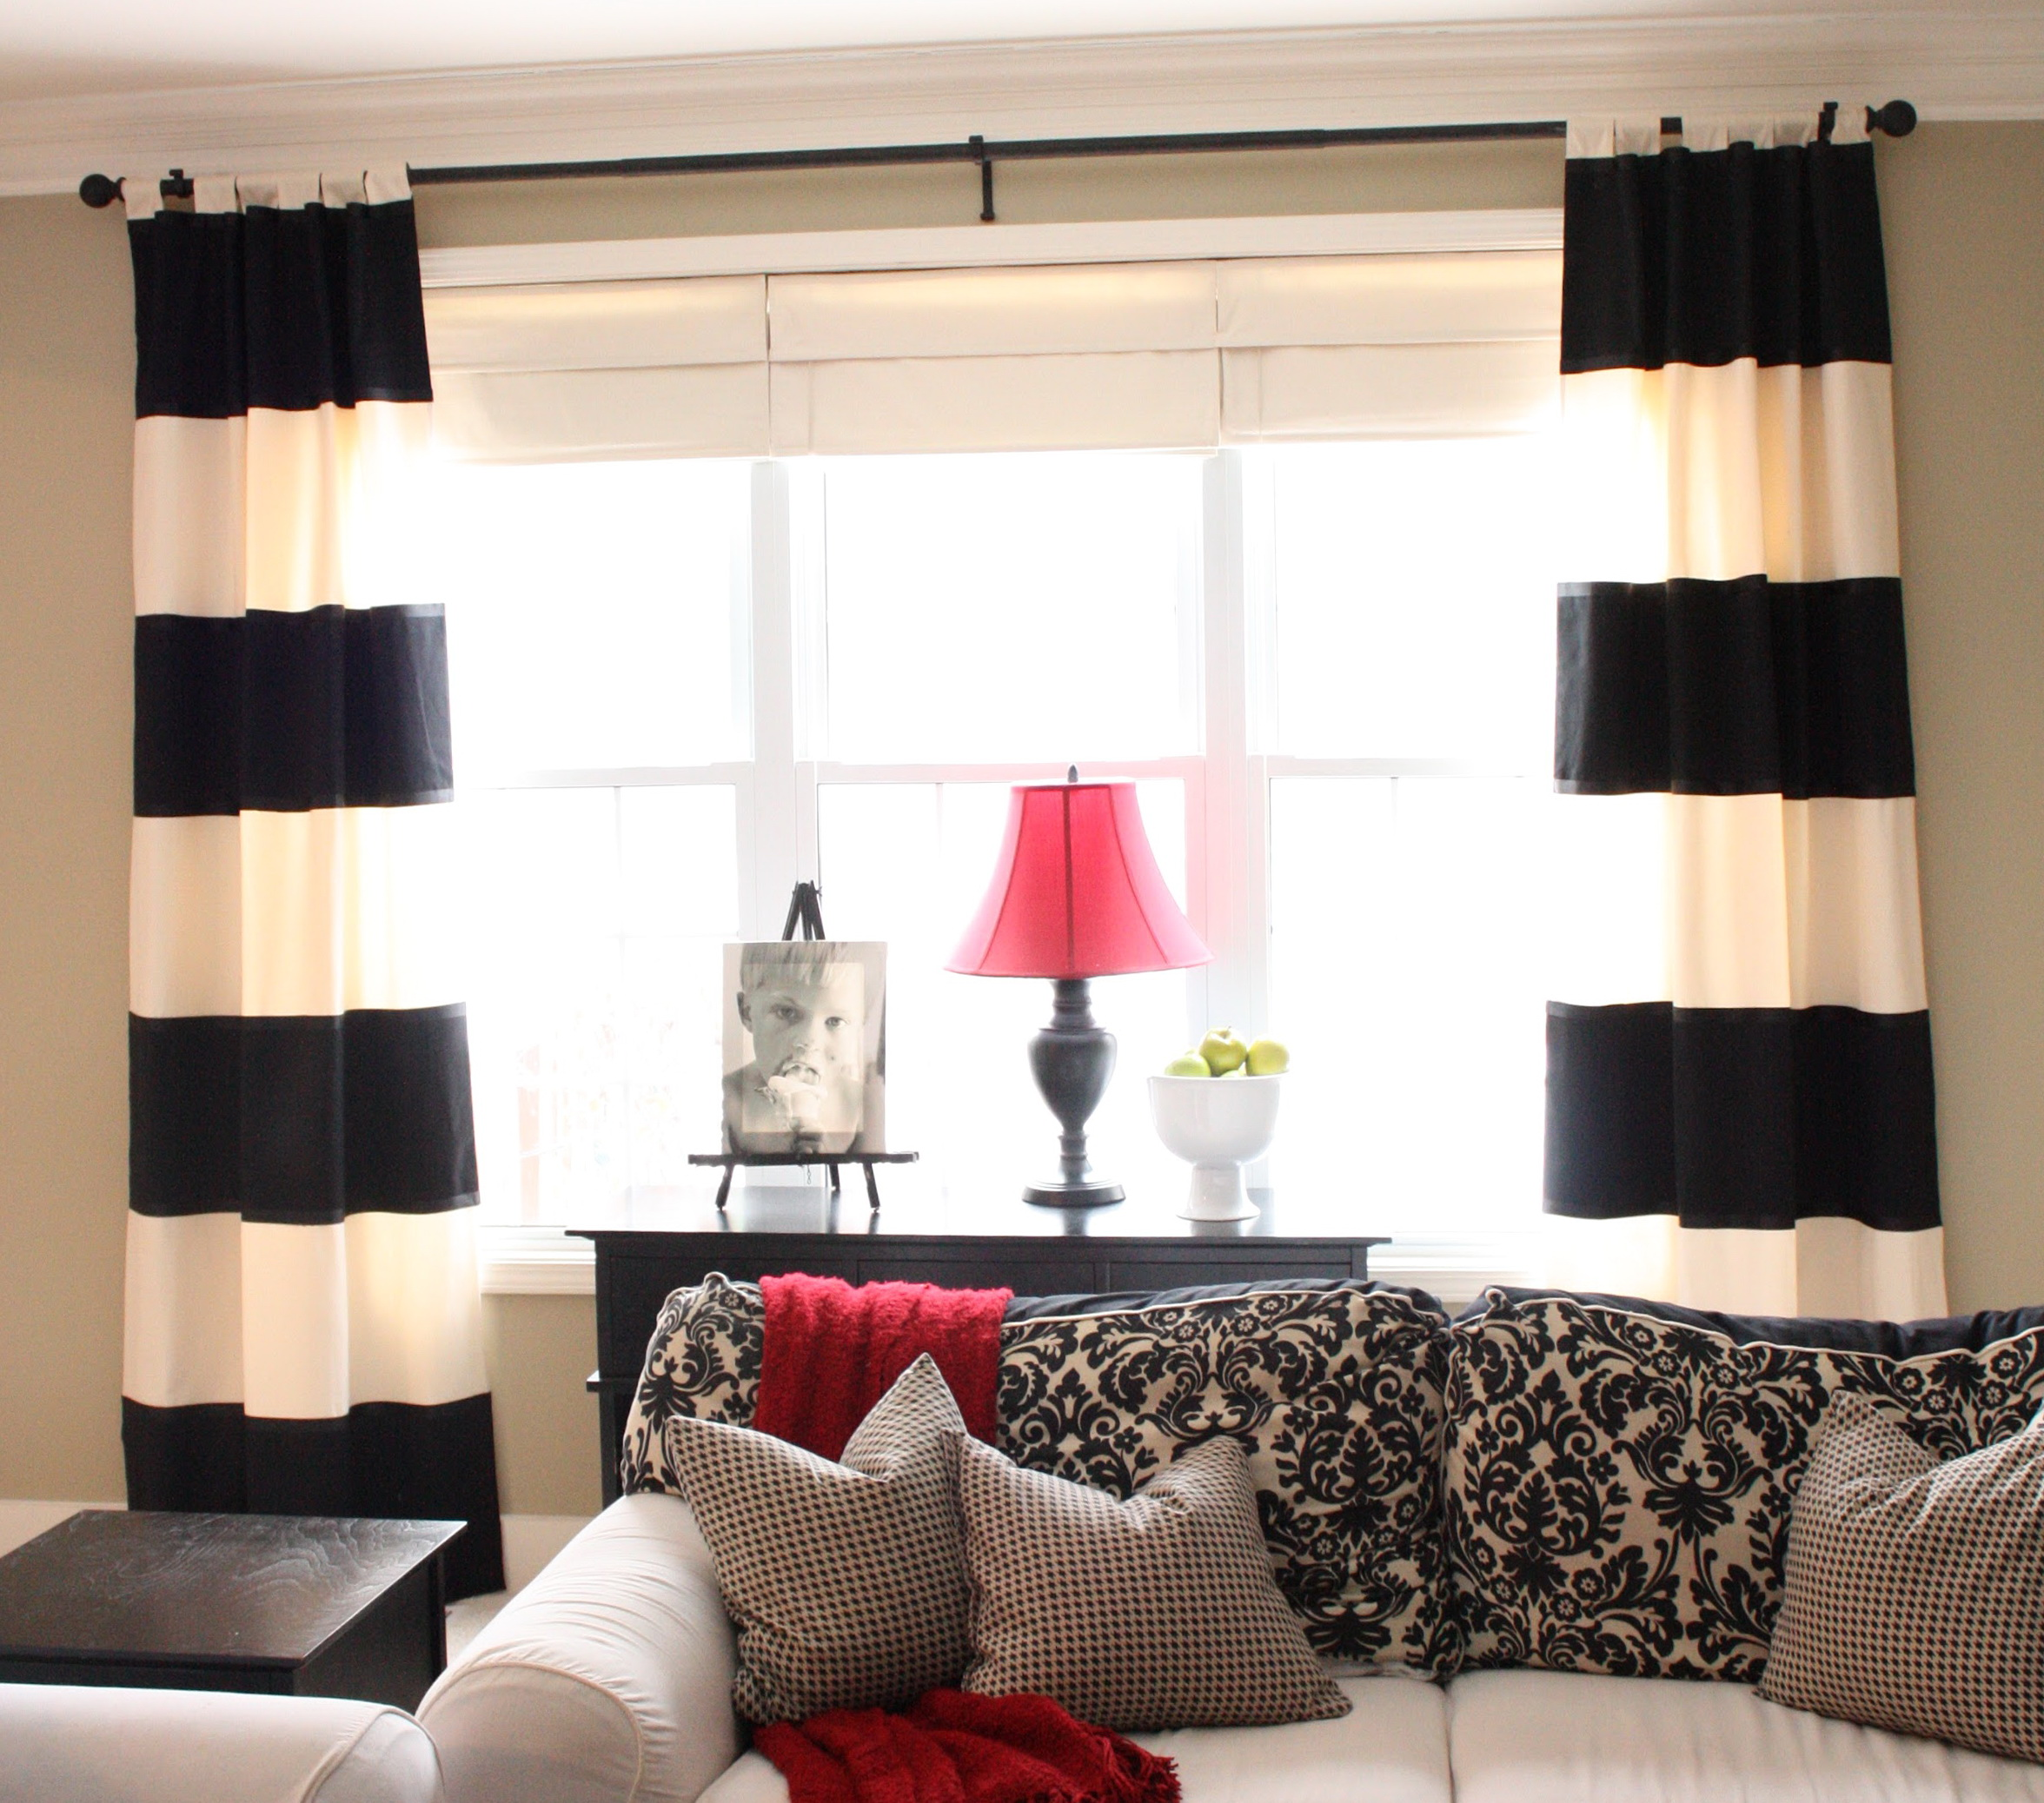 Diy living room curtains ideas home design ideas Living room ideas diy